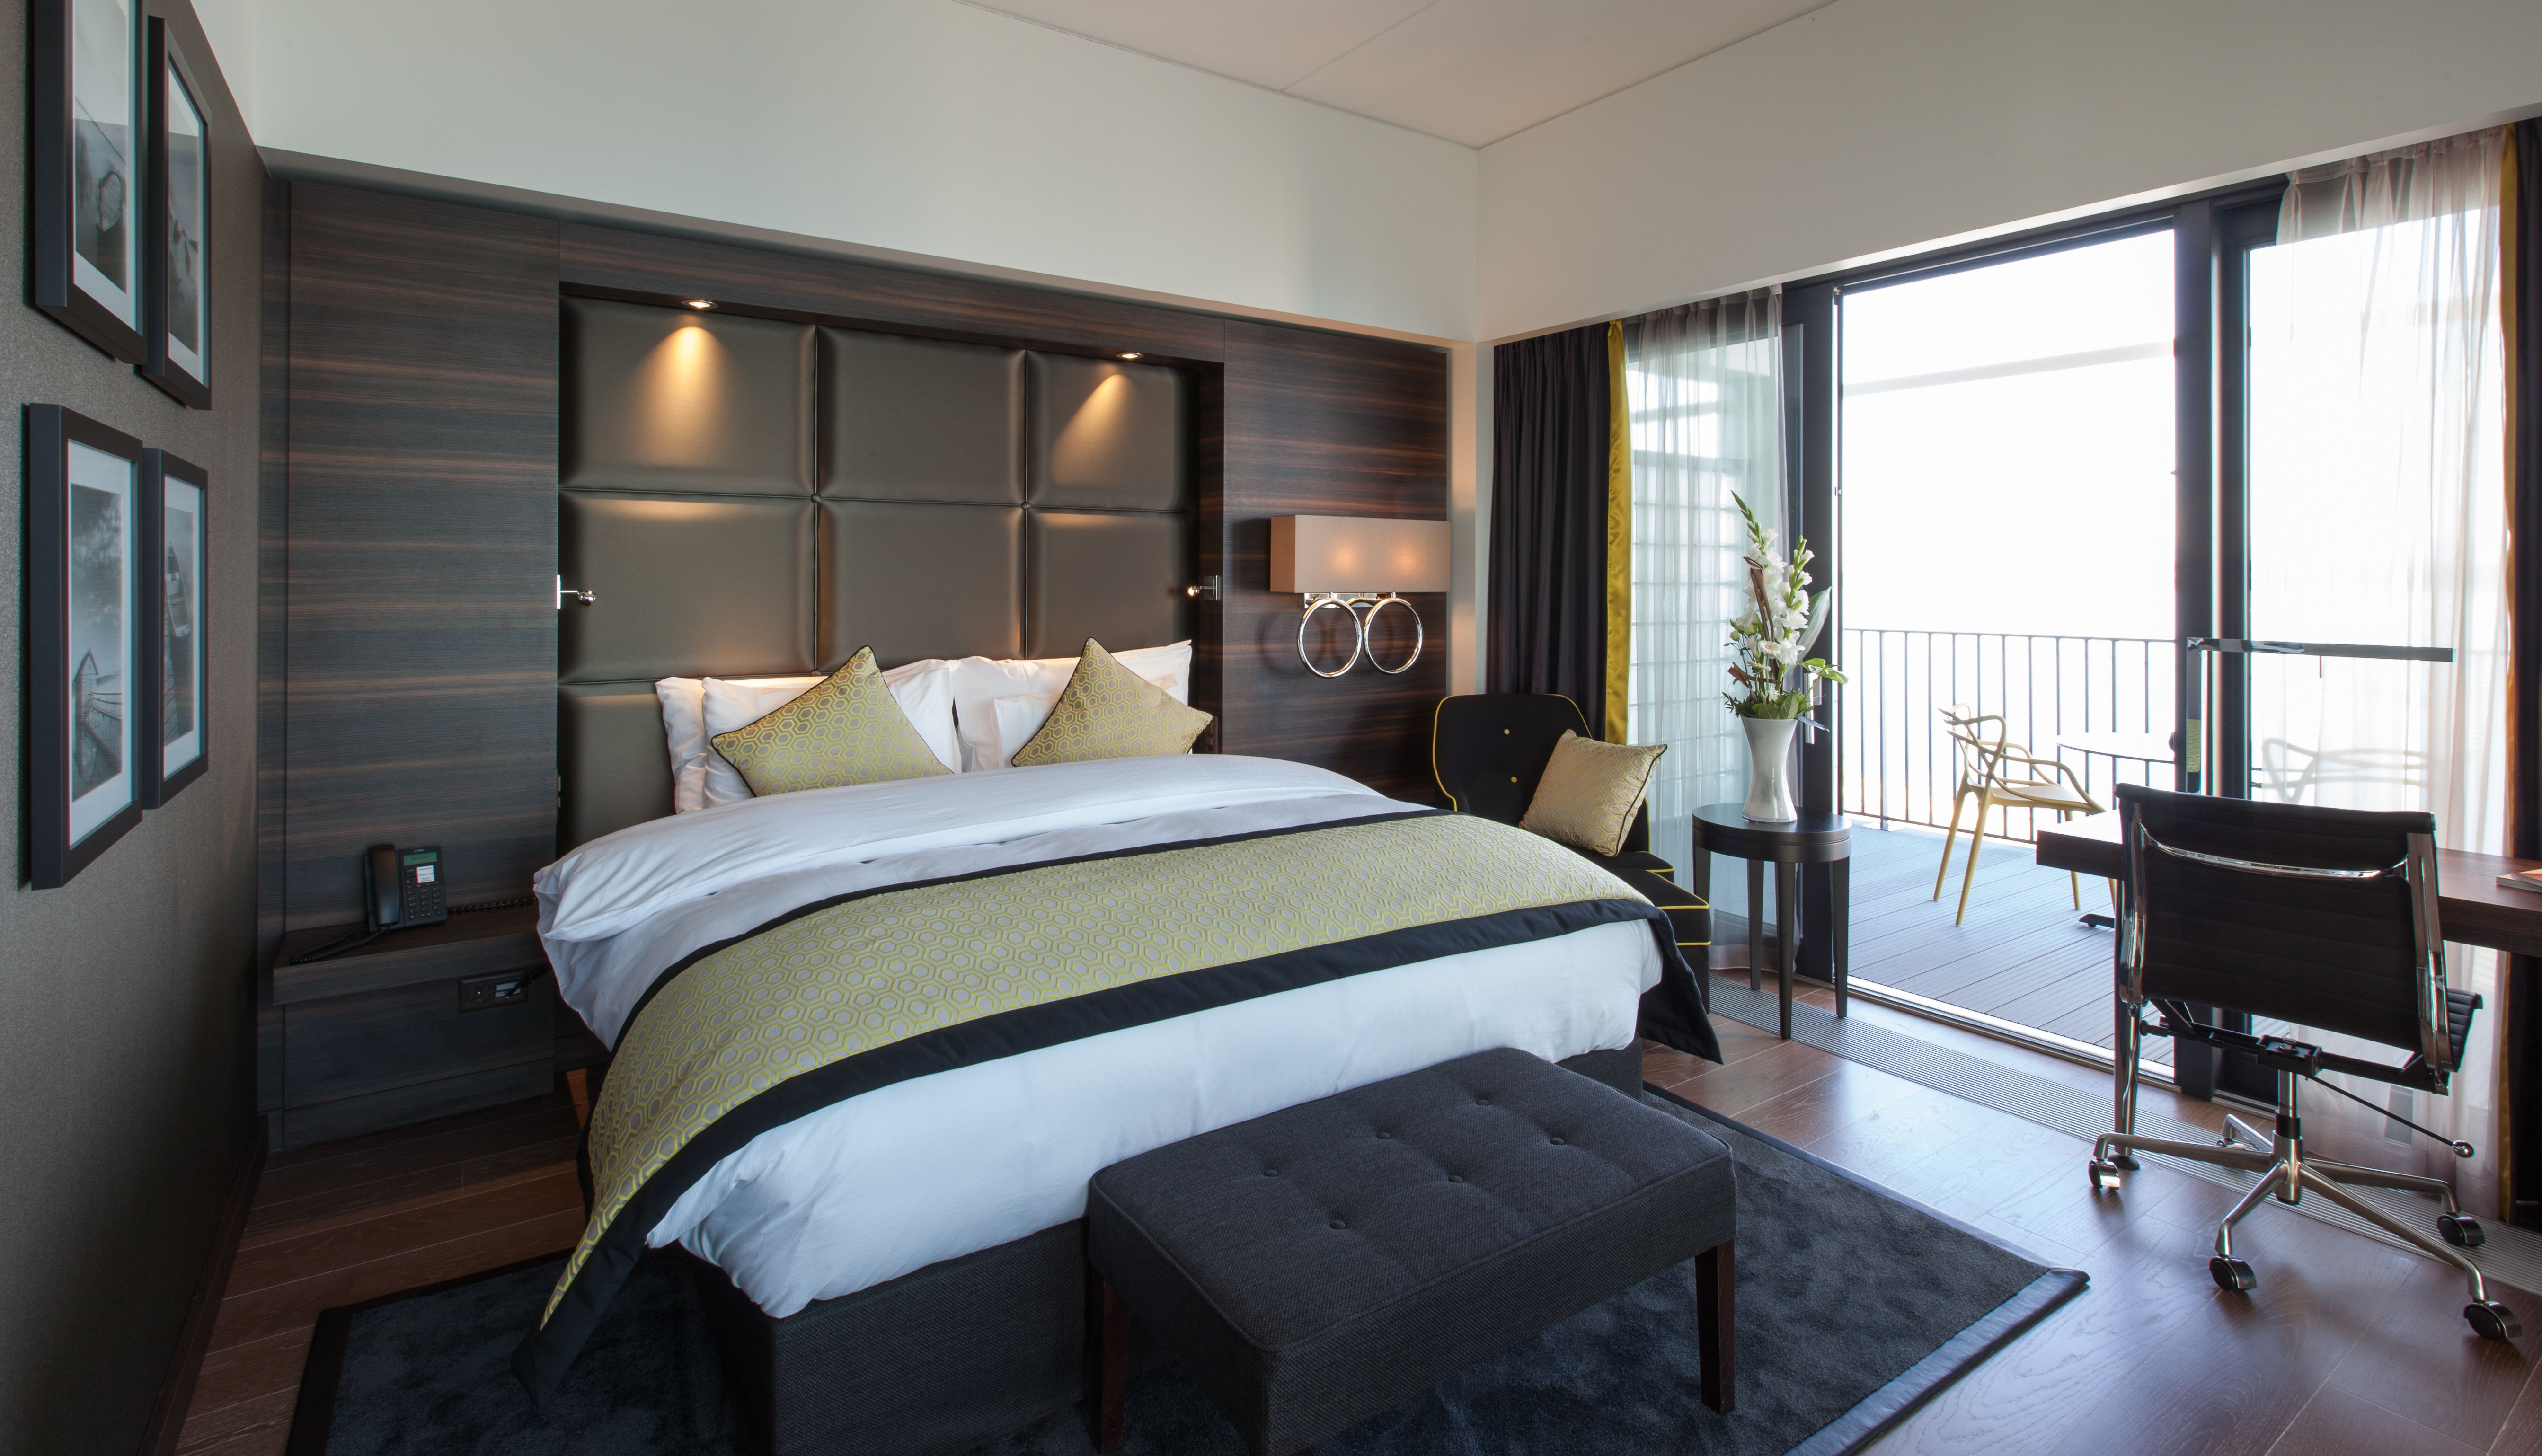 chambre h tel hotel de luxe beaulac suisse made by james agencement made by la maison james. Black Bedroom Furniture Sets. Home Design Ideas